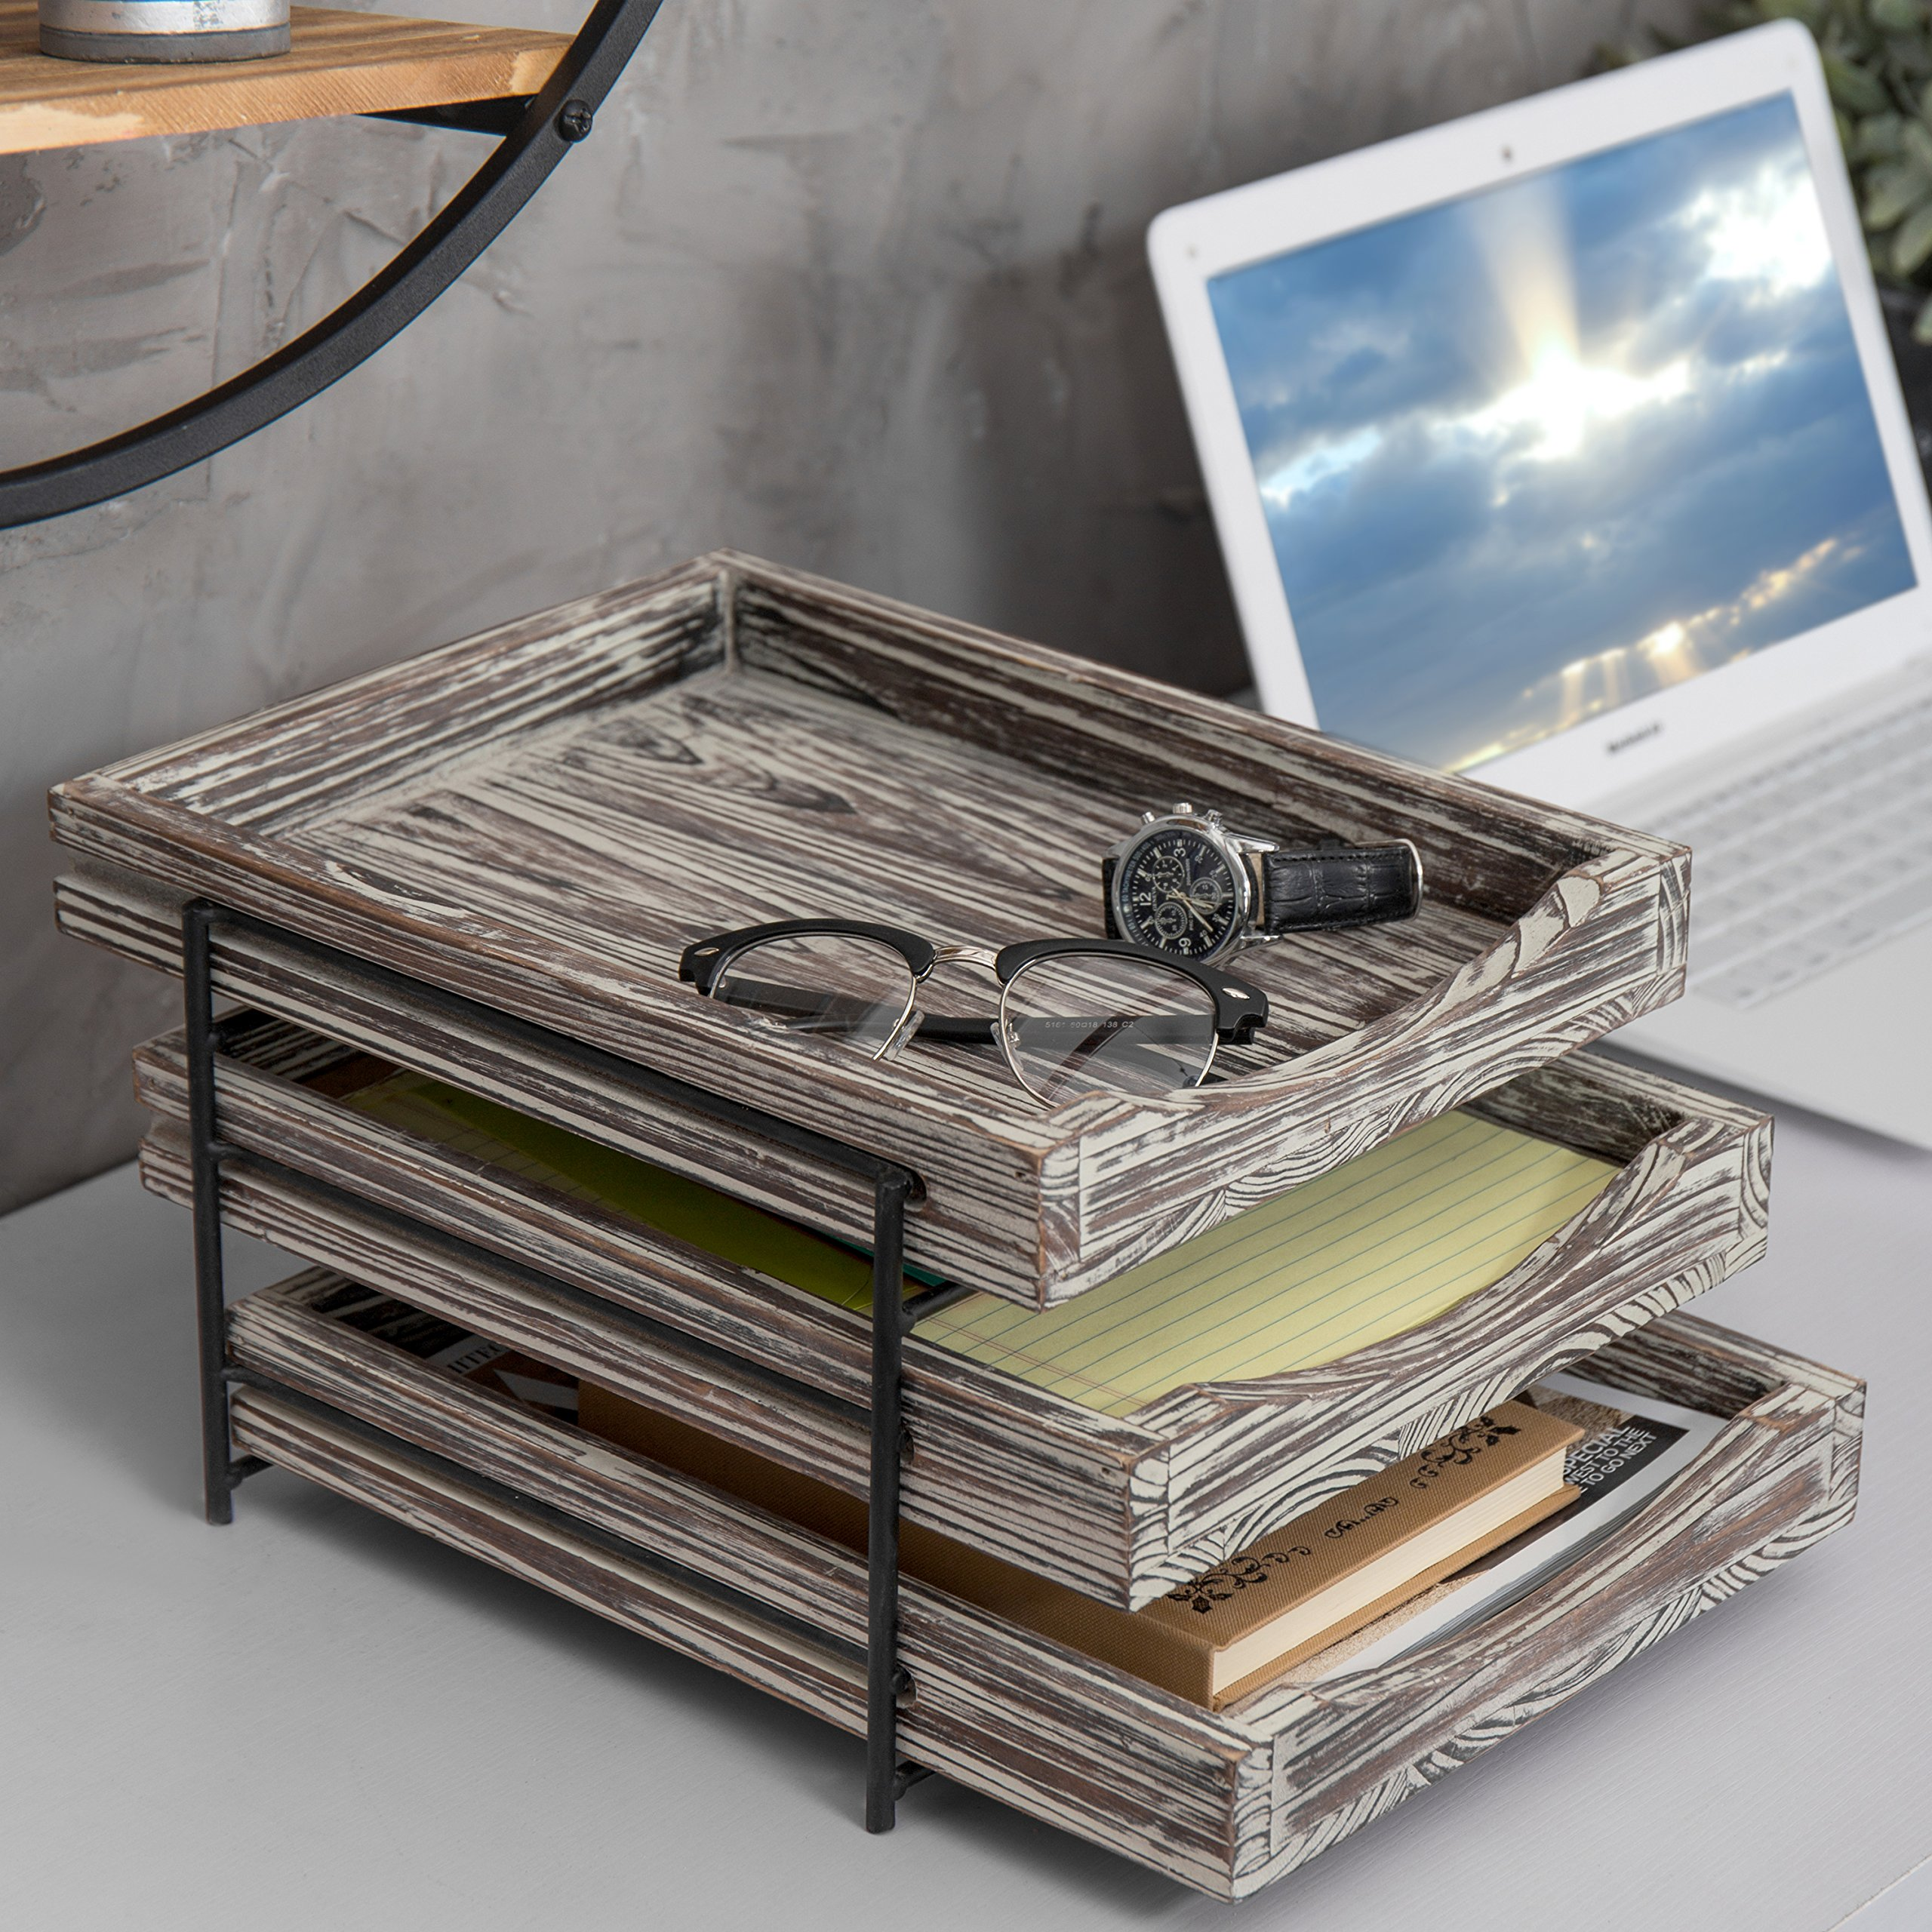 MyGift 3-Tier Rustic Torched Wood & Black Metal Document Organizer with Sliding Trays by MyGift (Image #3)